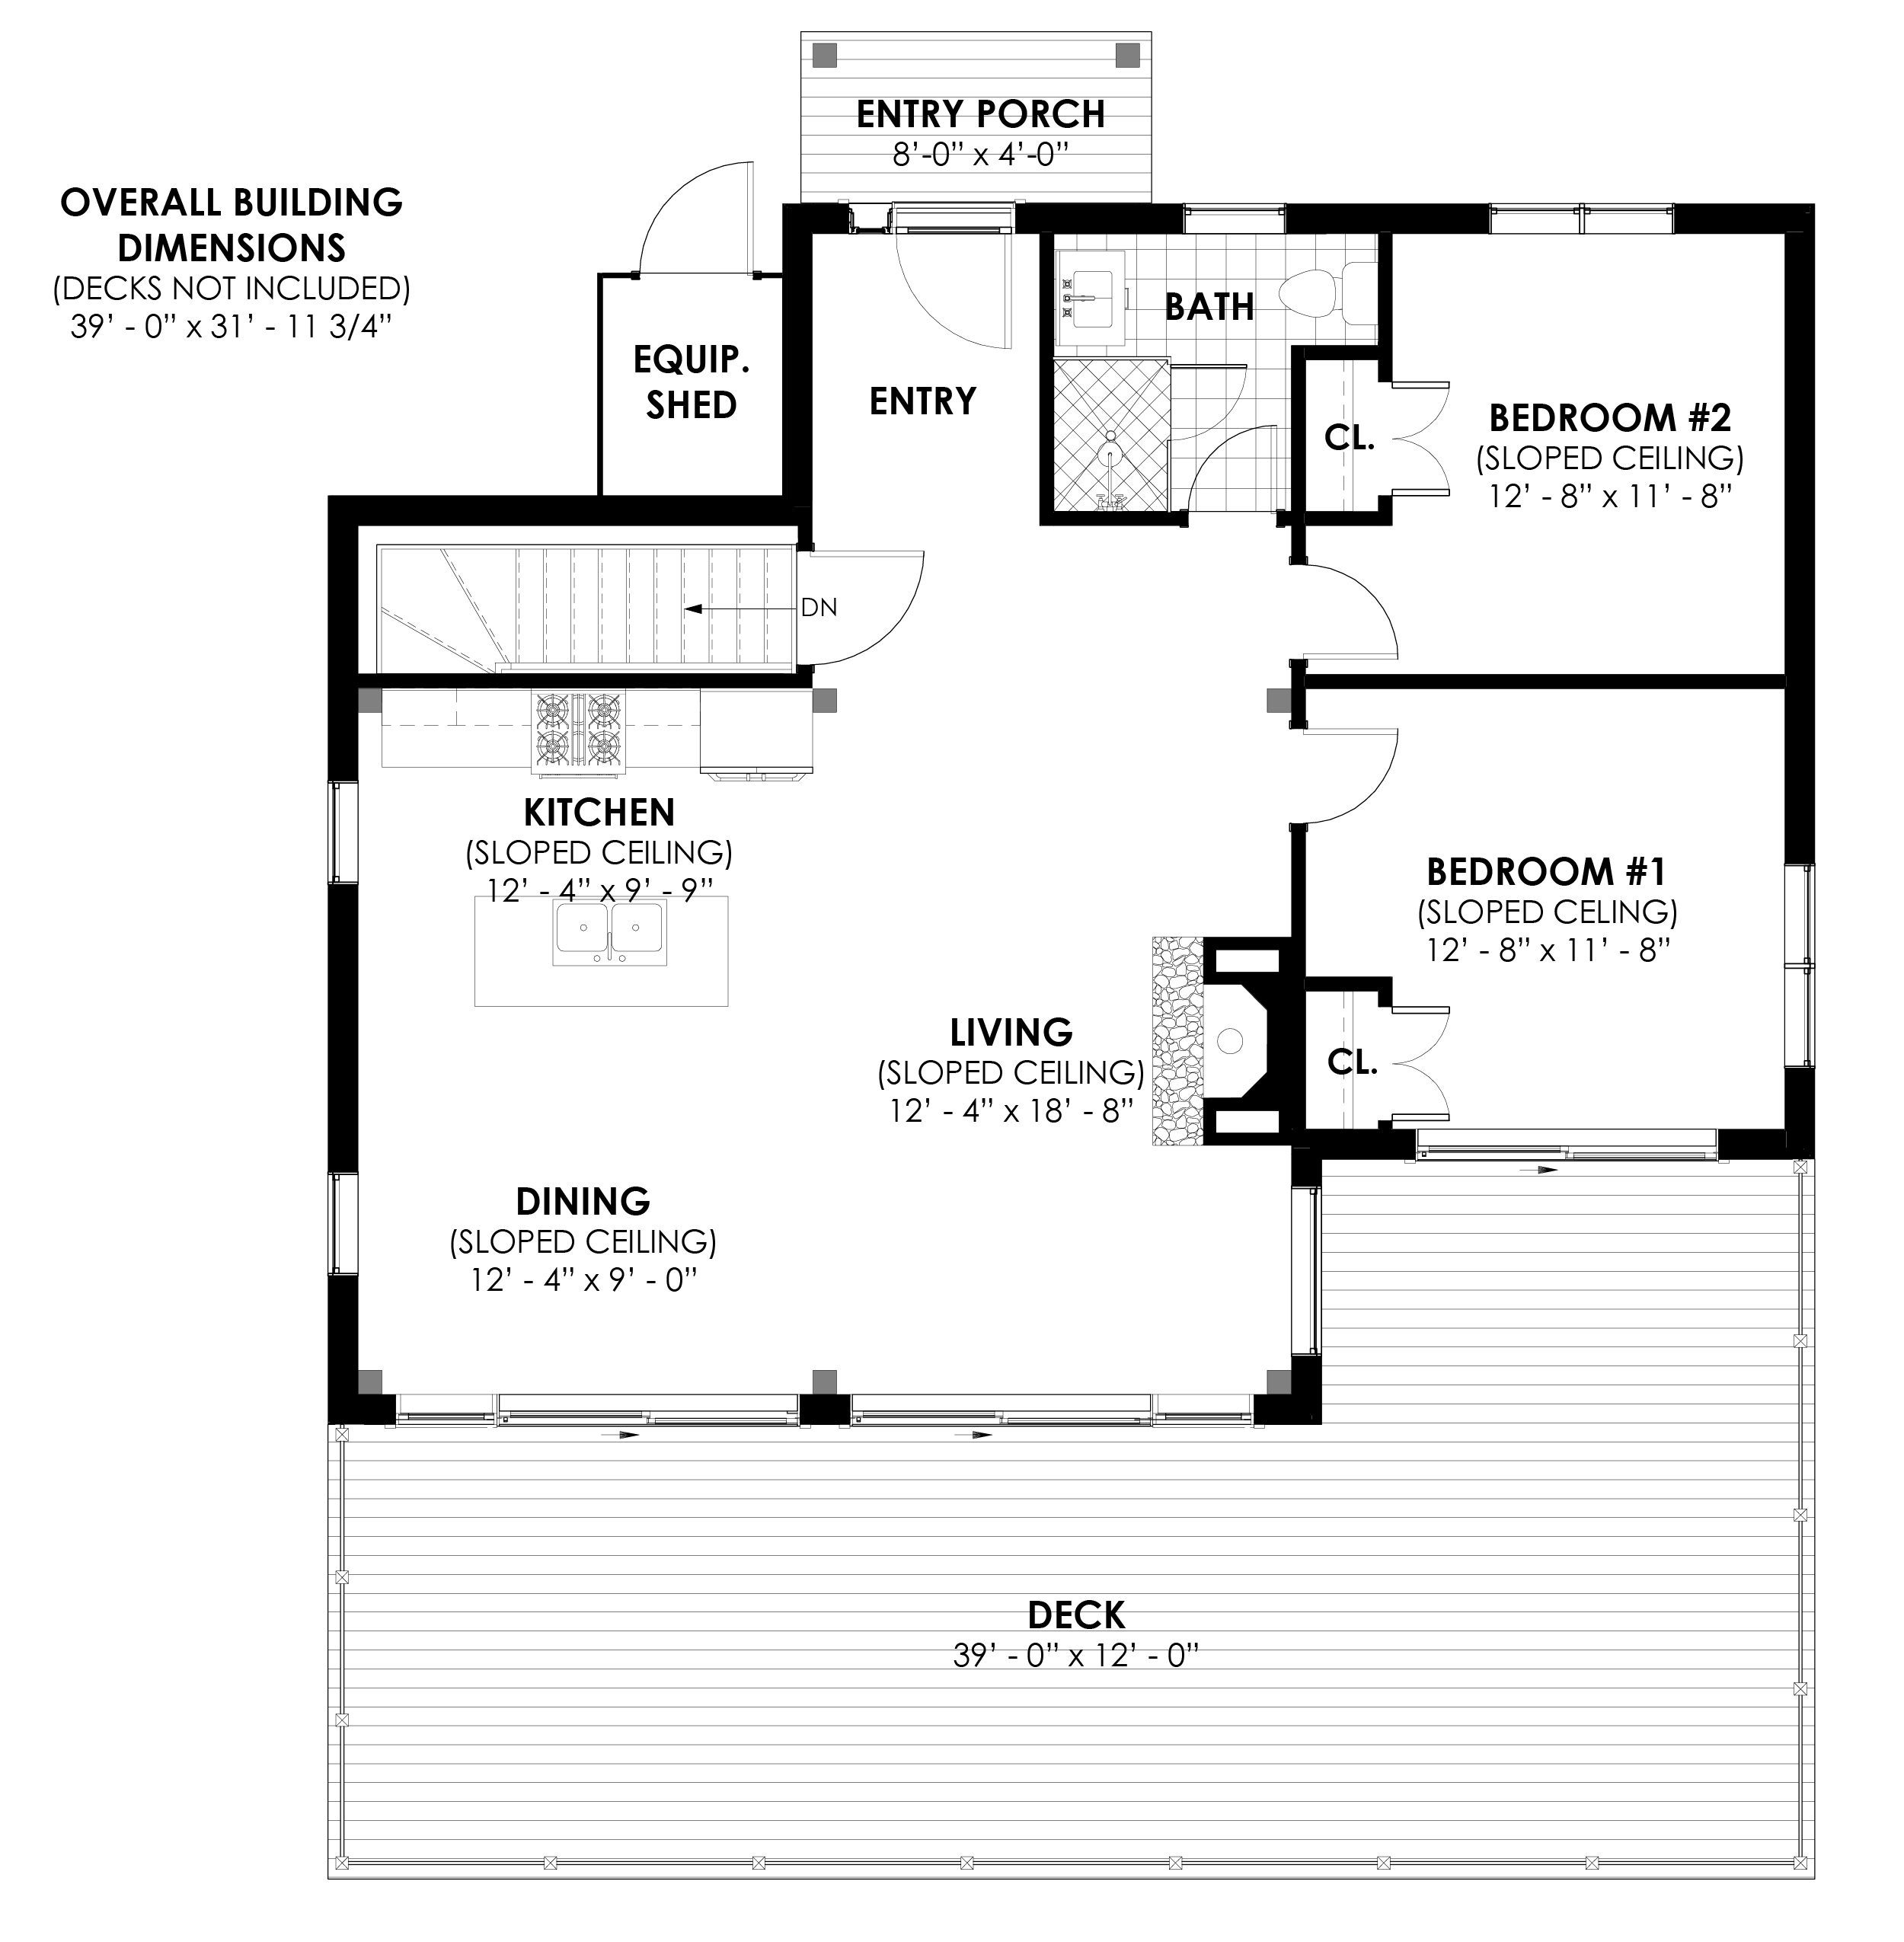 Normerica Timber Frames, House Plan, The Laurentian, First Floor Layout